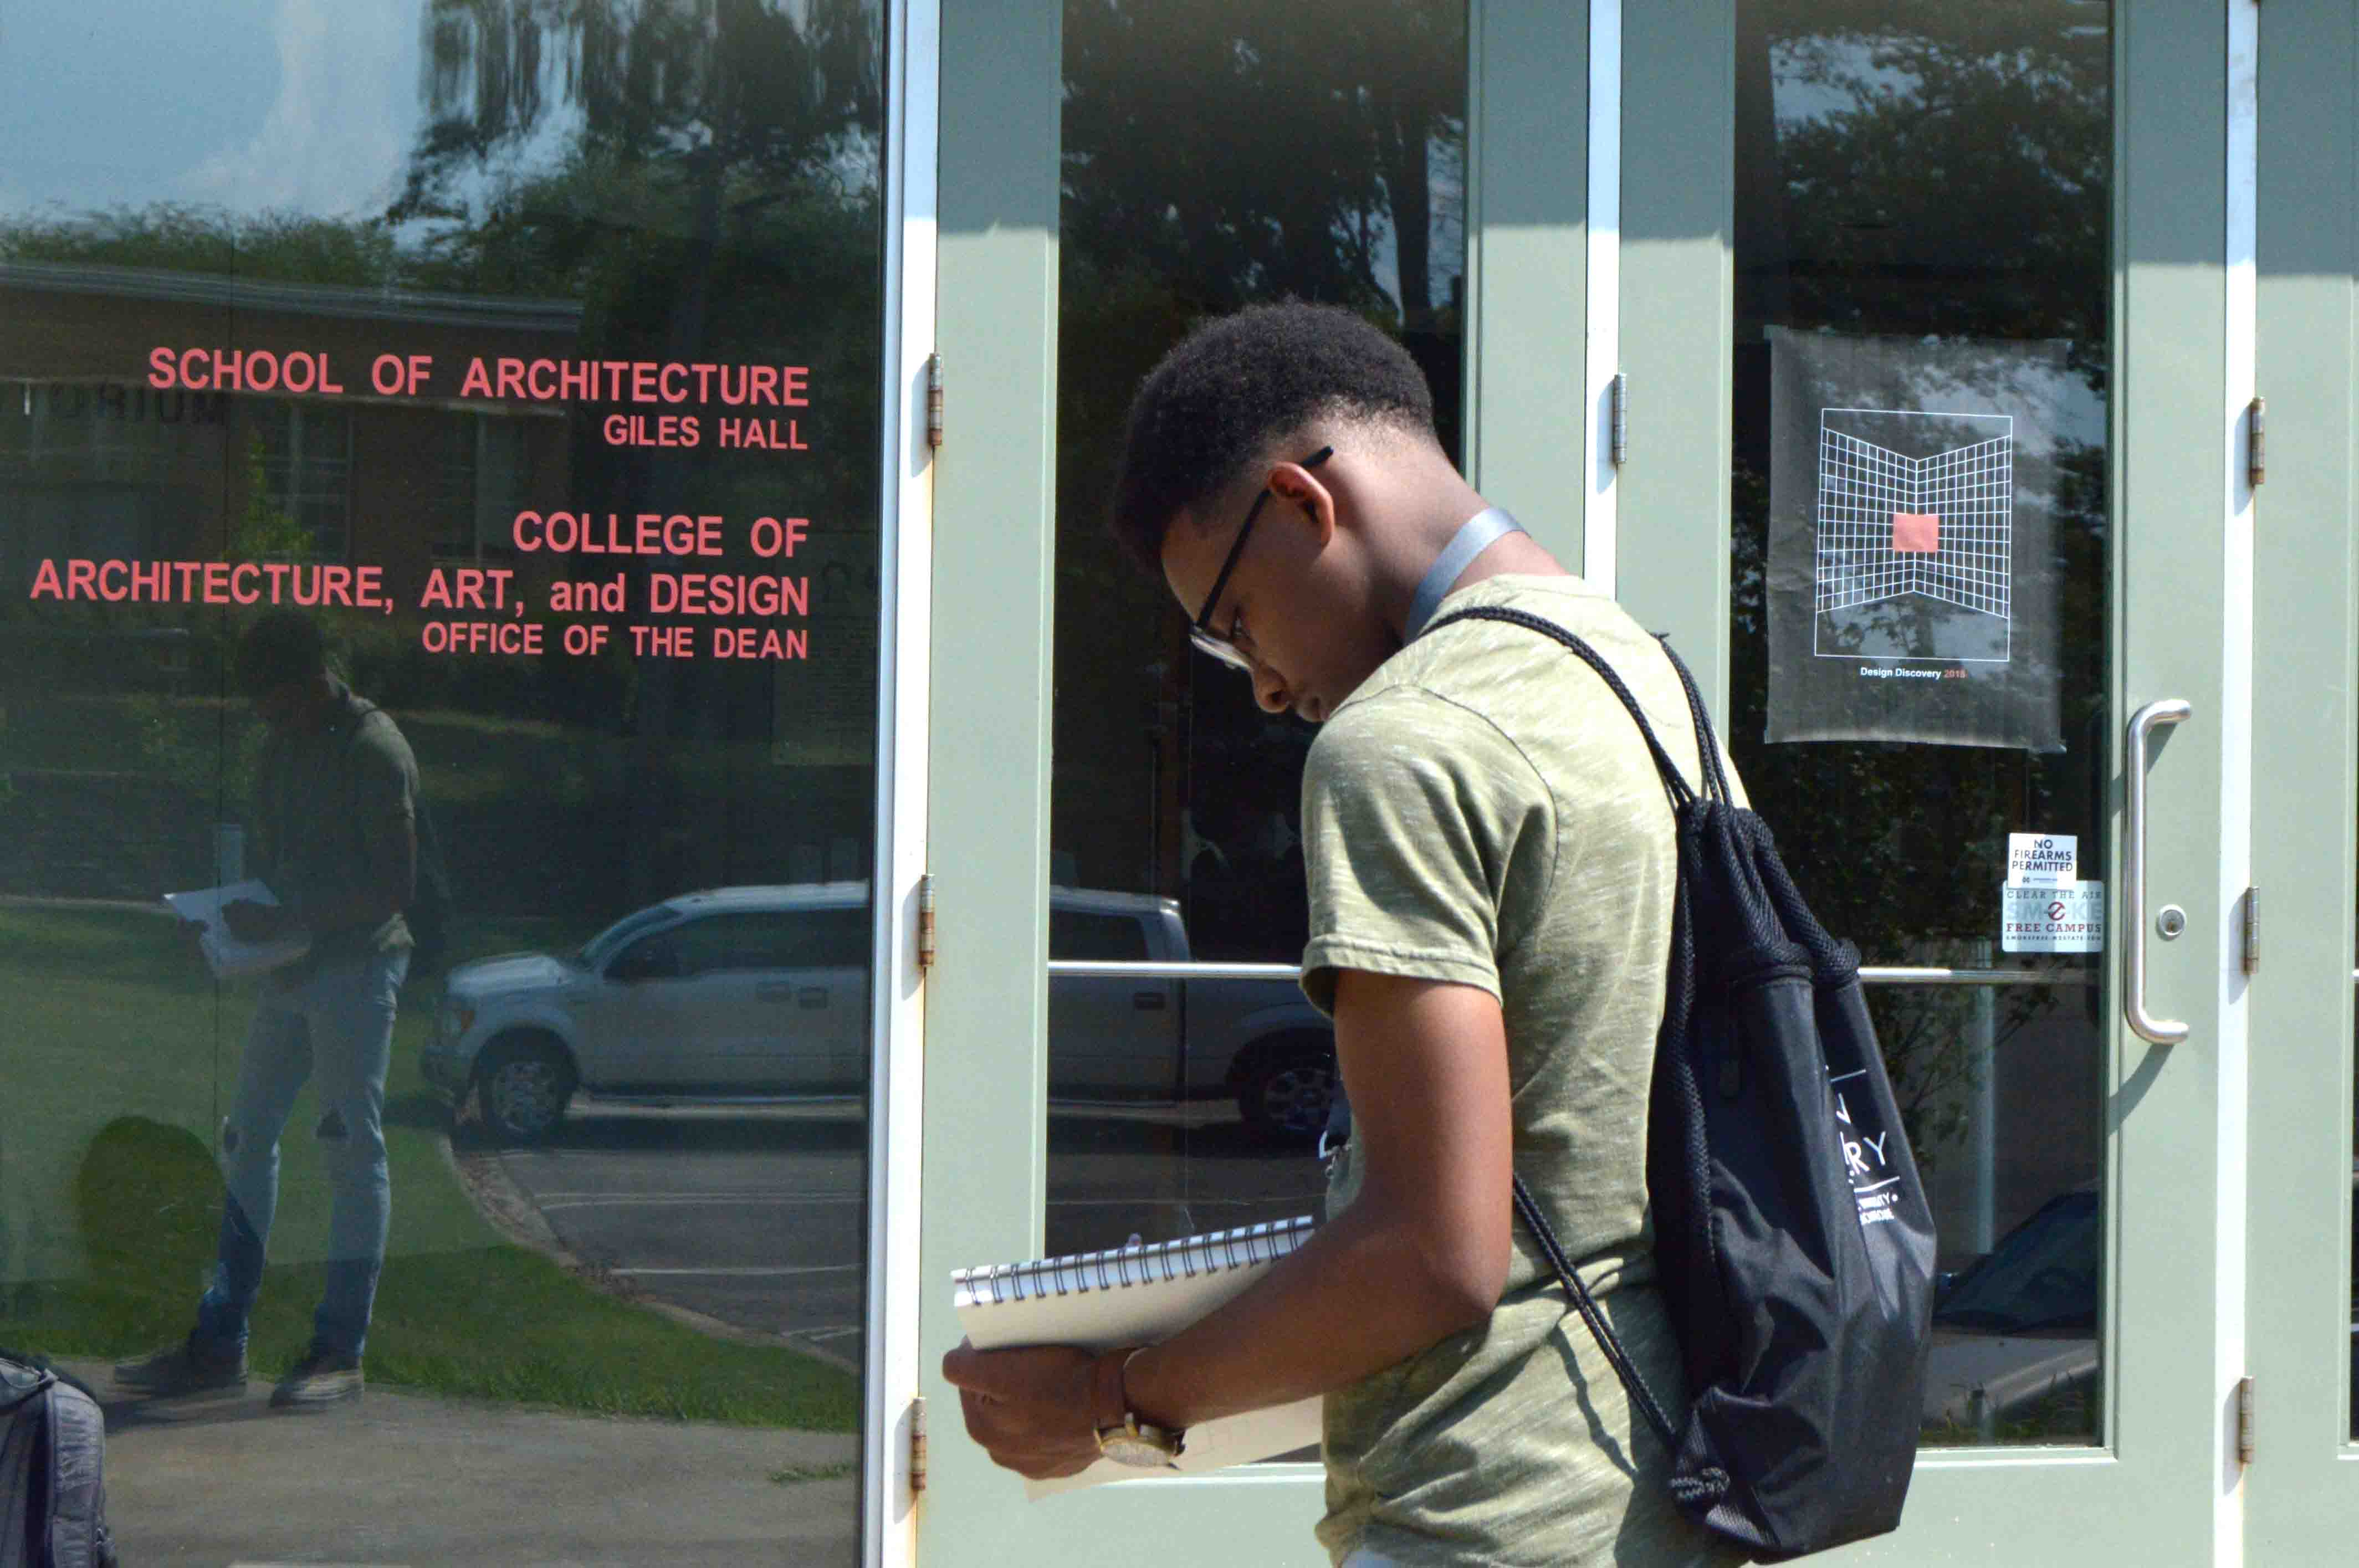 student outside building drawing